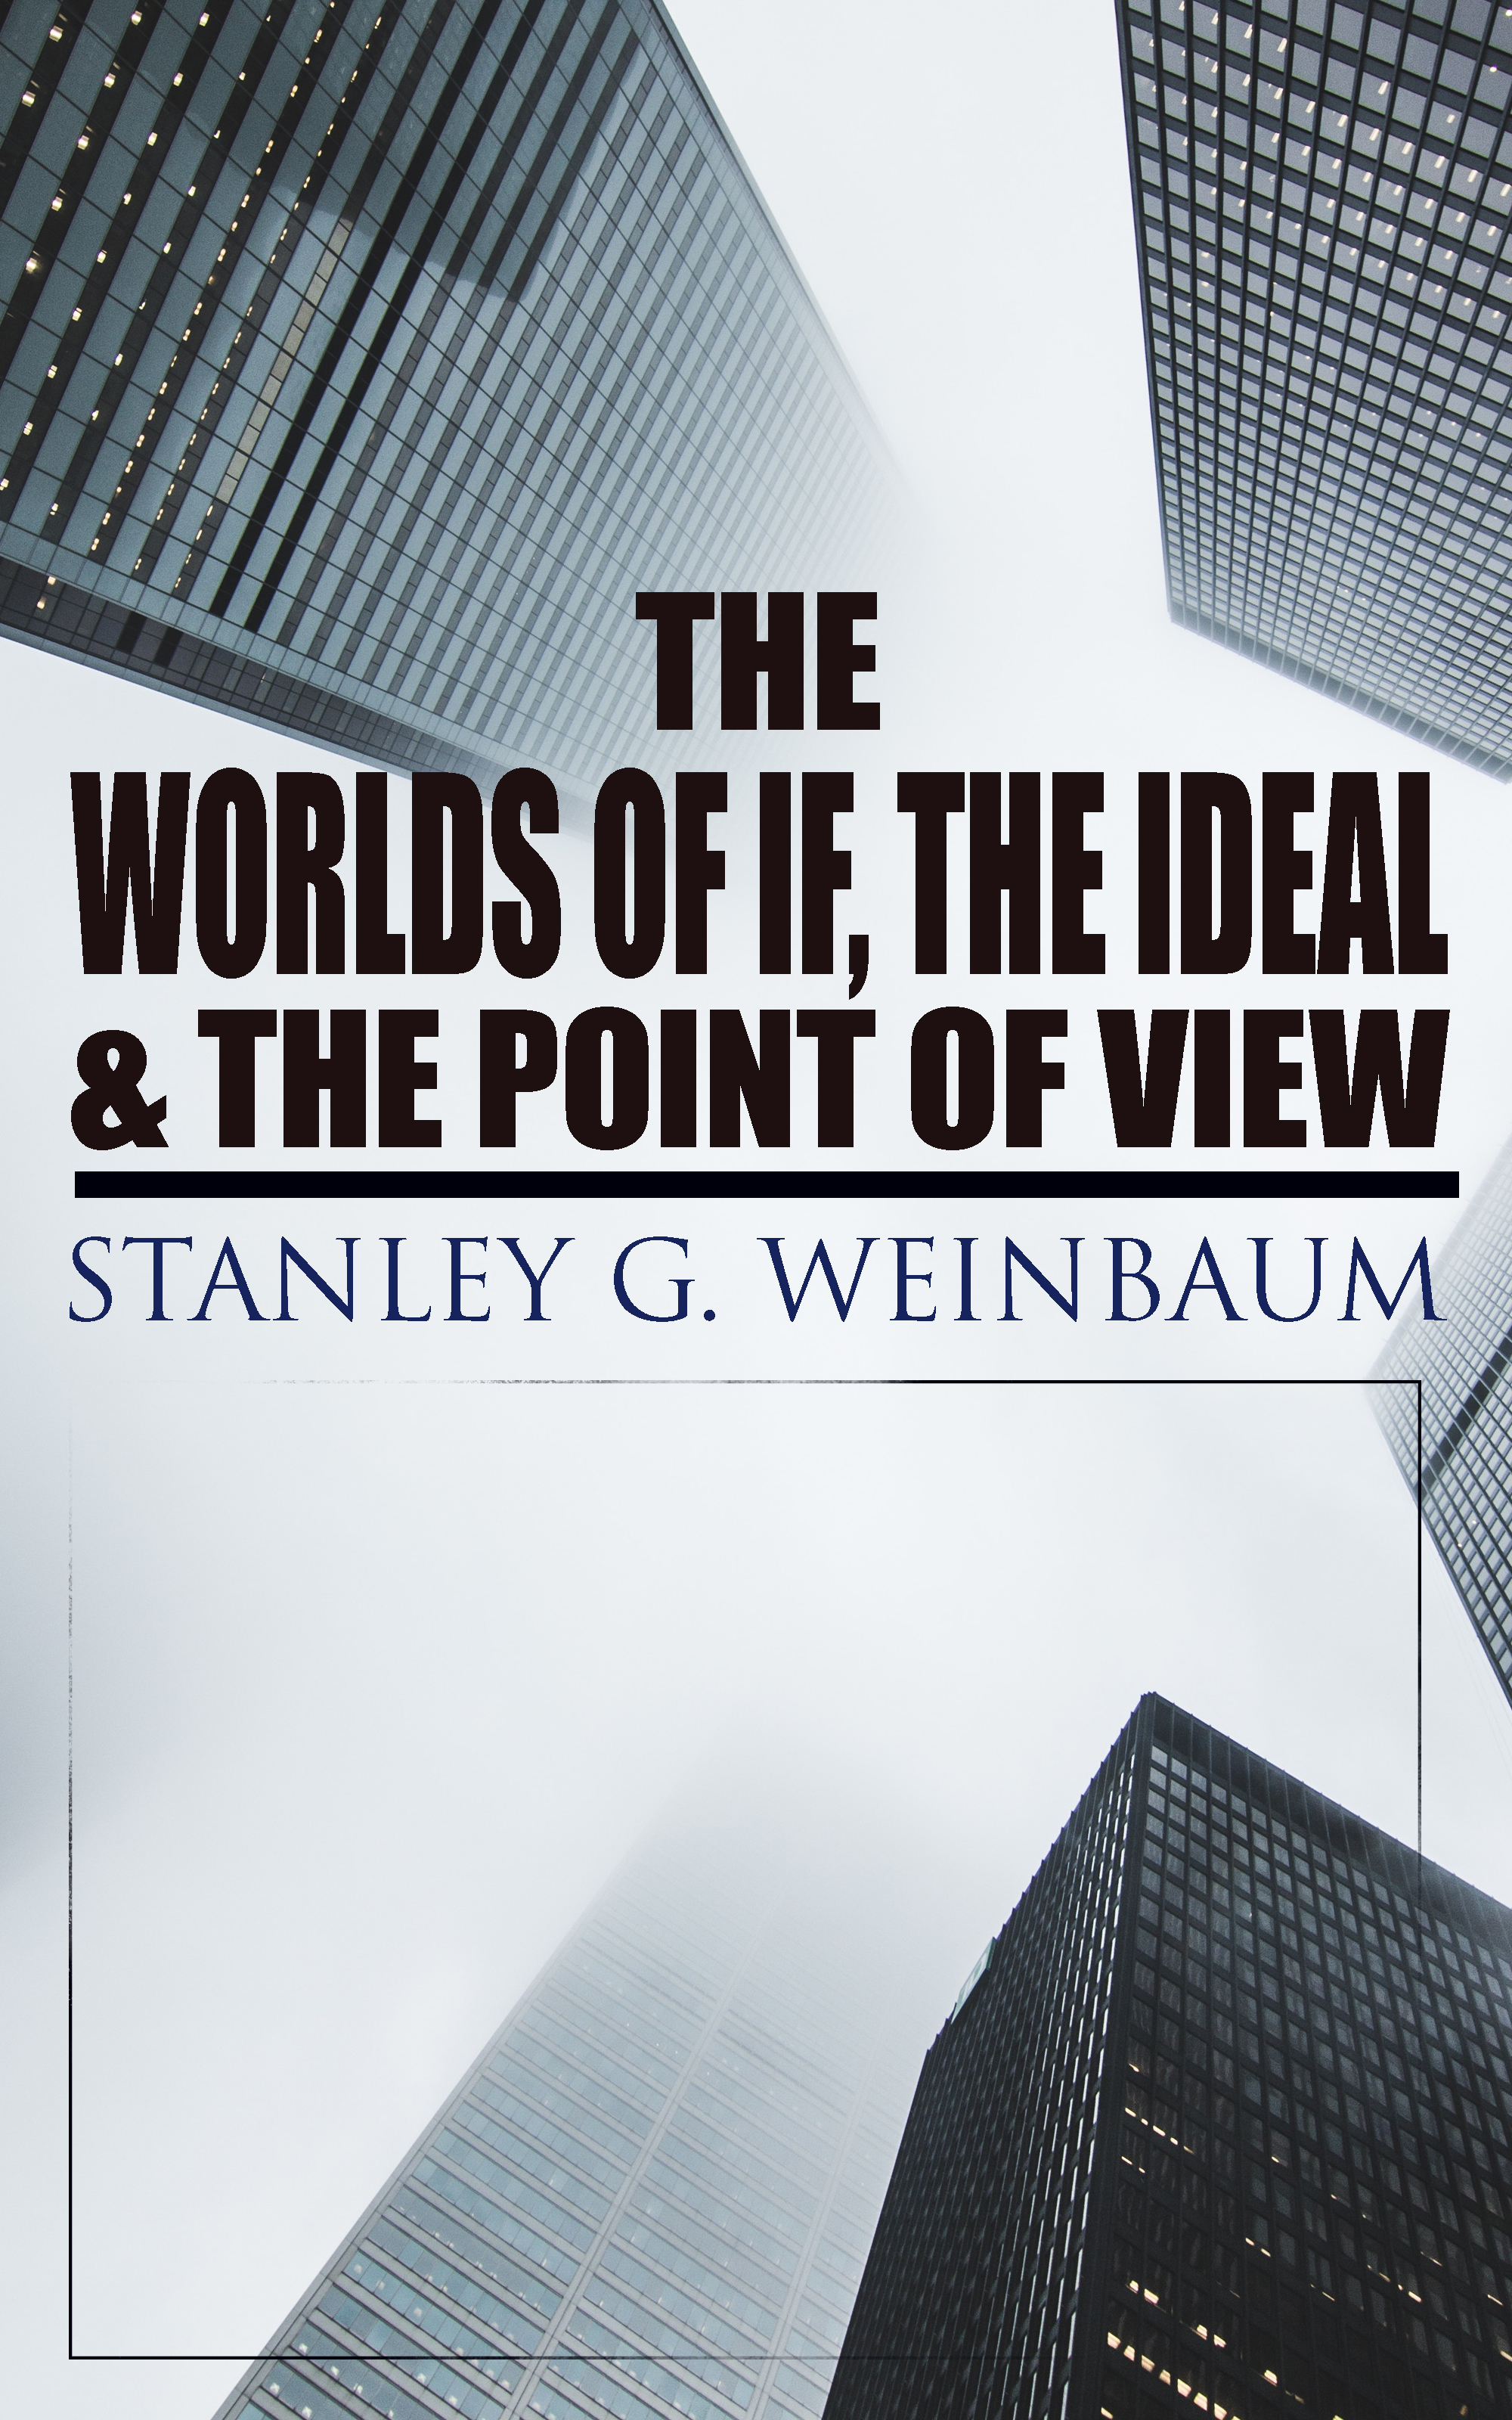 цена на Stanley G. Weinbaum The Worlds of If, The Ideal & The Point of View